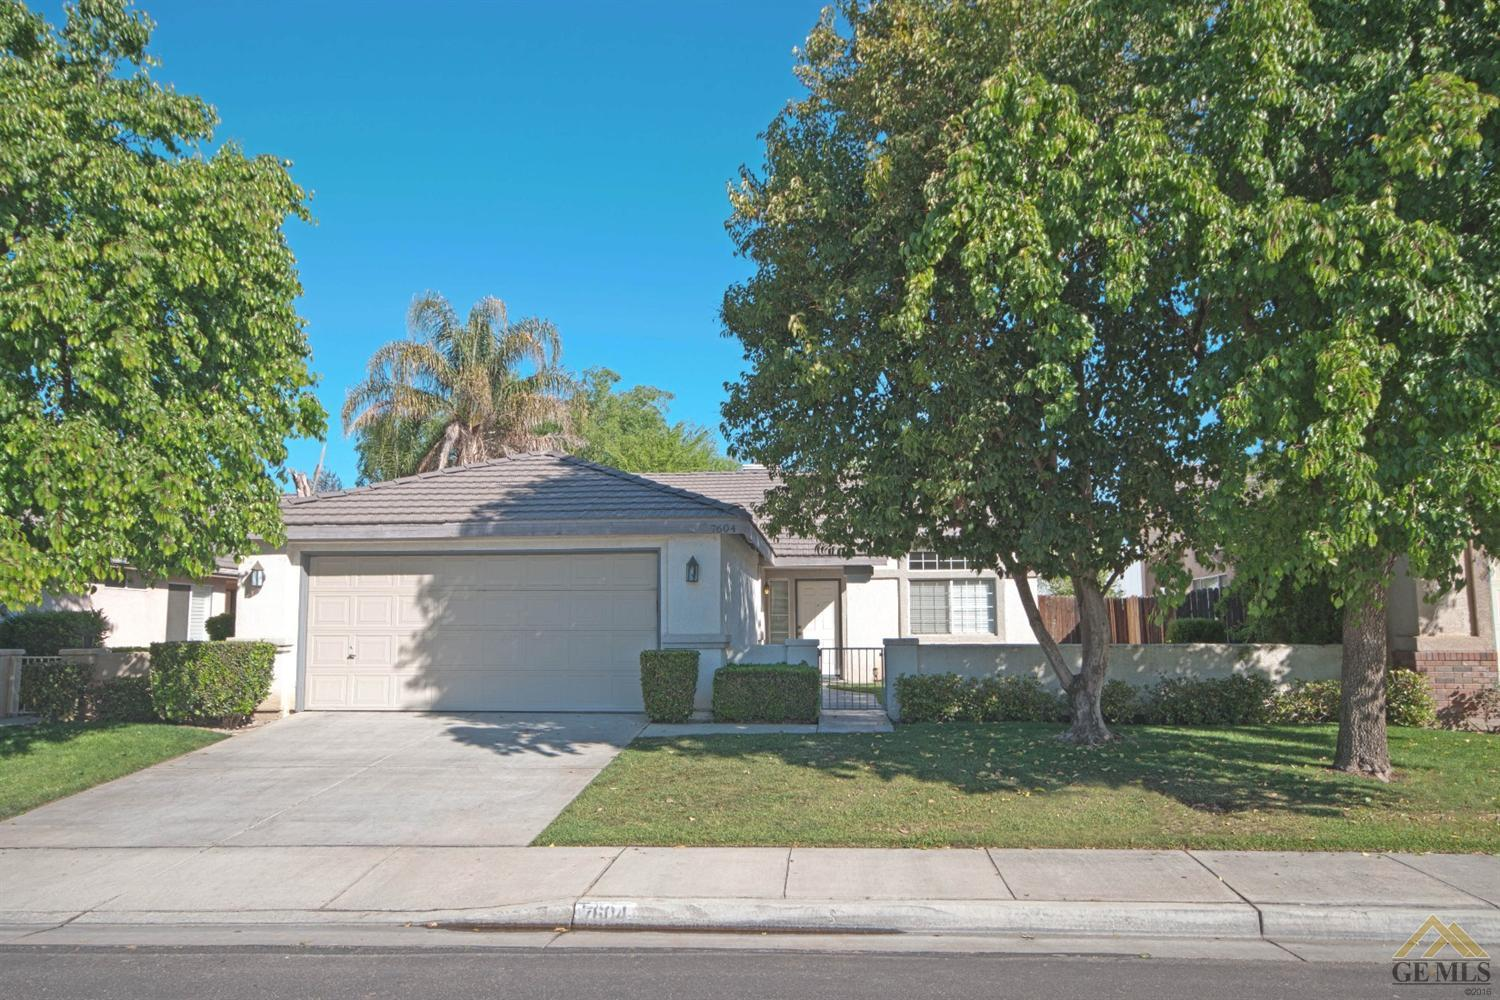 7604 Hidden Bridge Drive, BAKERSFIELD, 93313, CA